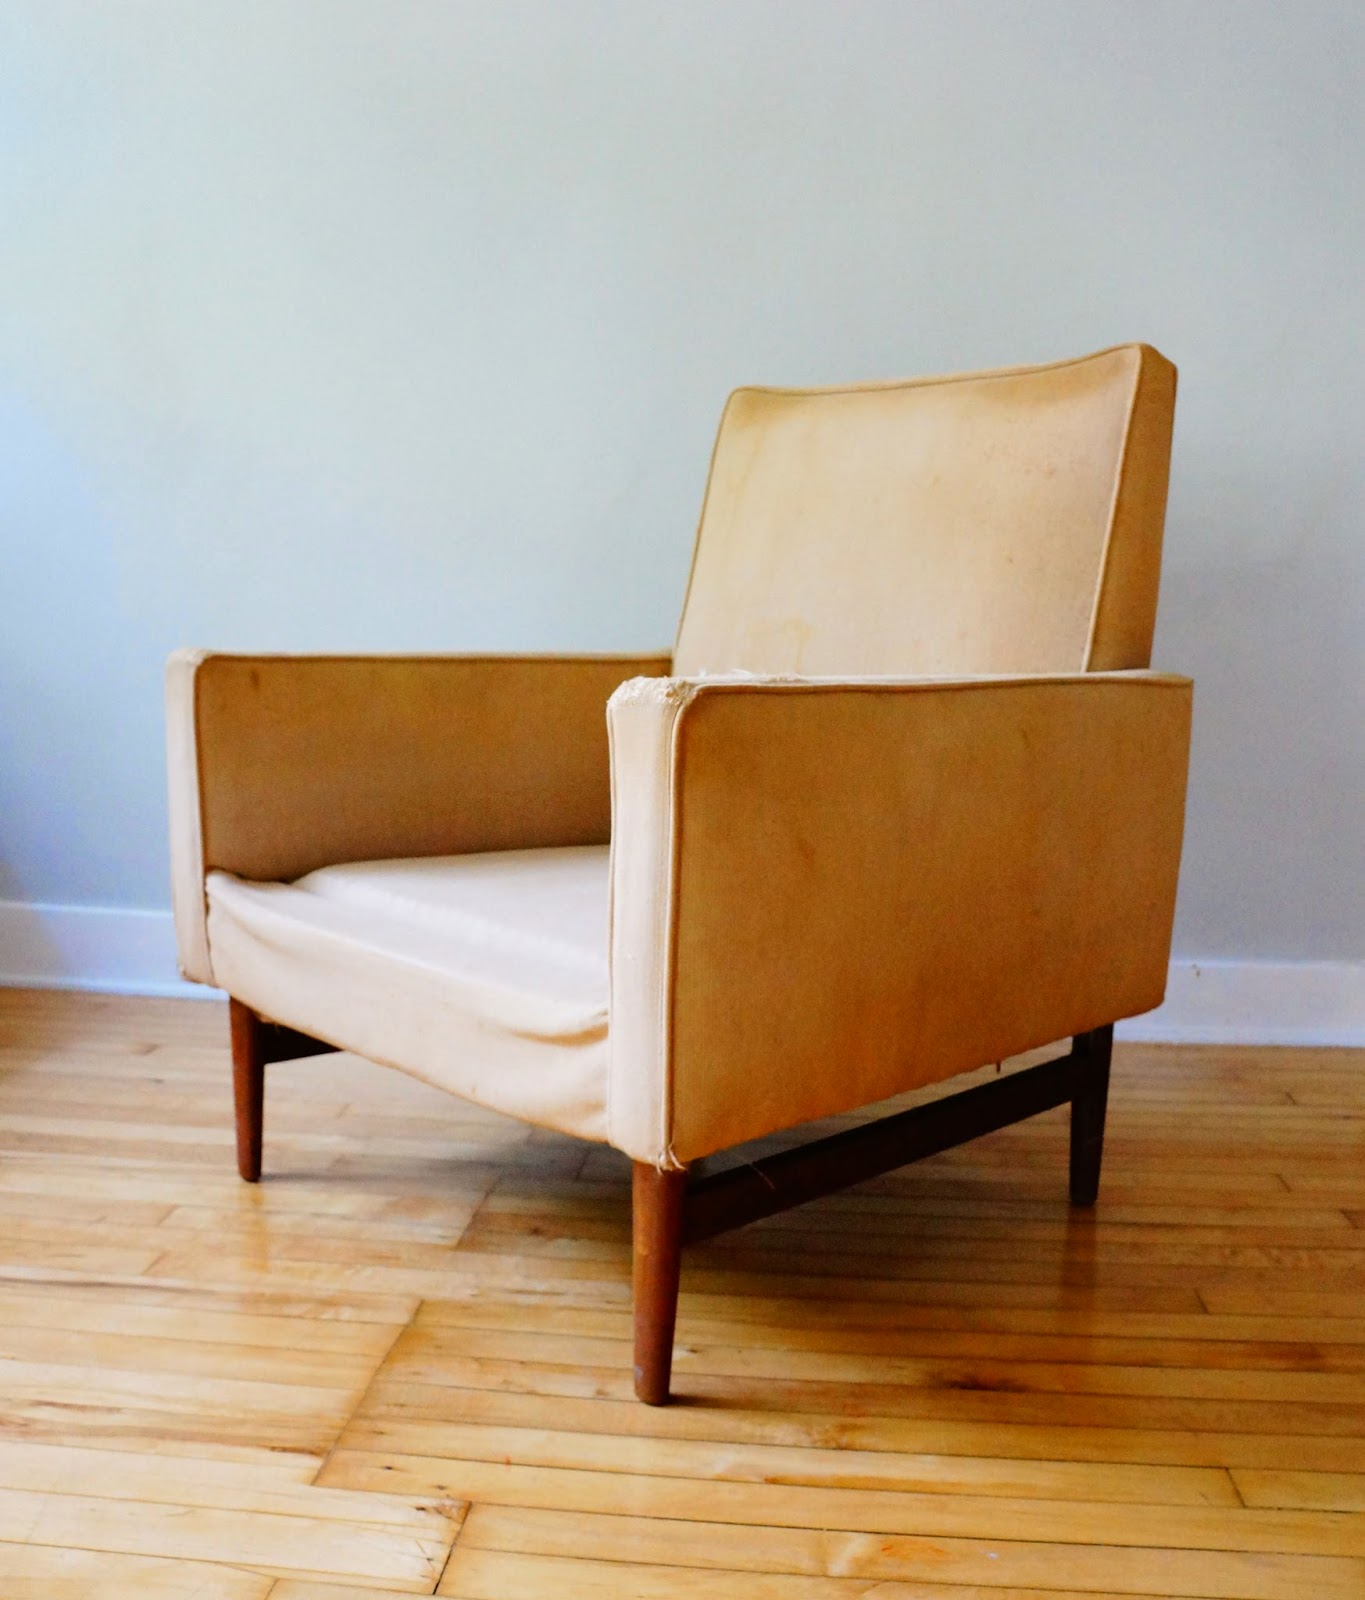 Midcentury Chairs Str8mcm Mid Century Lounge Chair